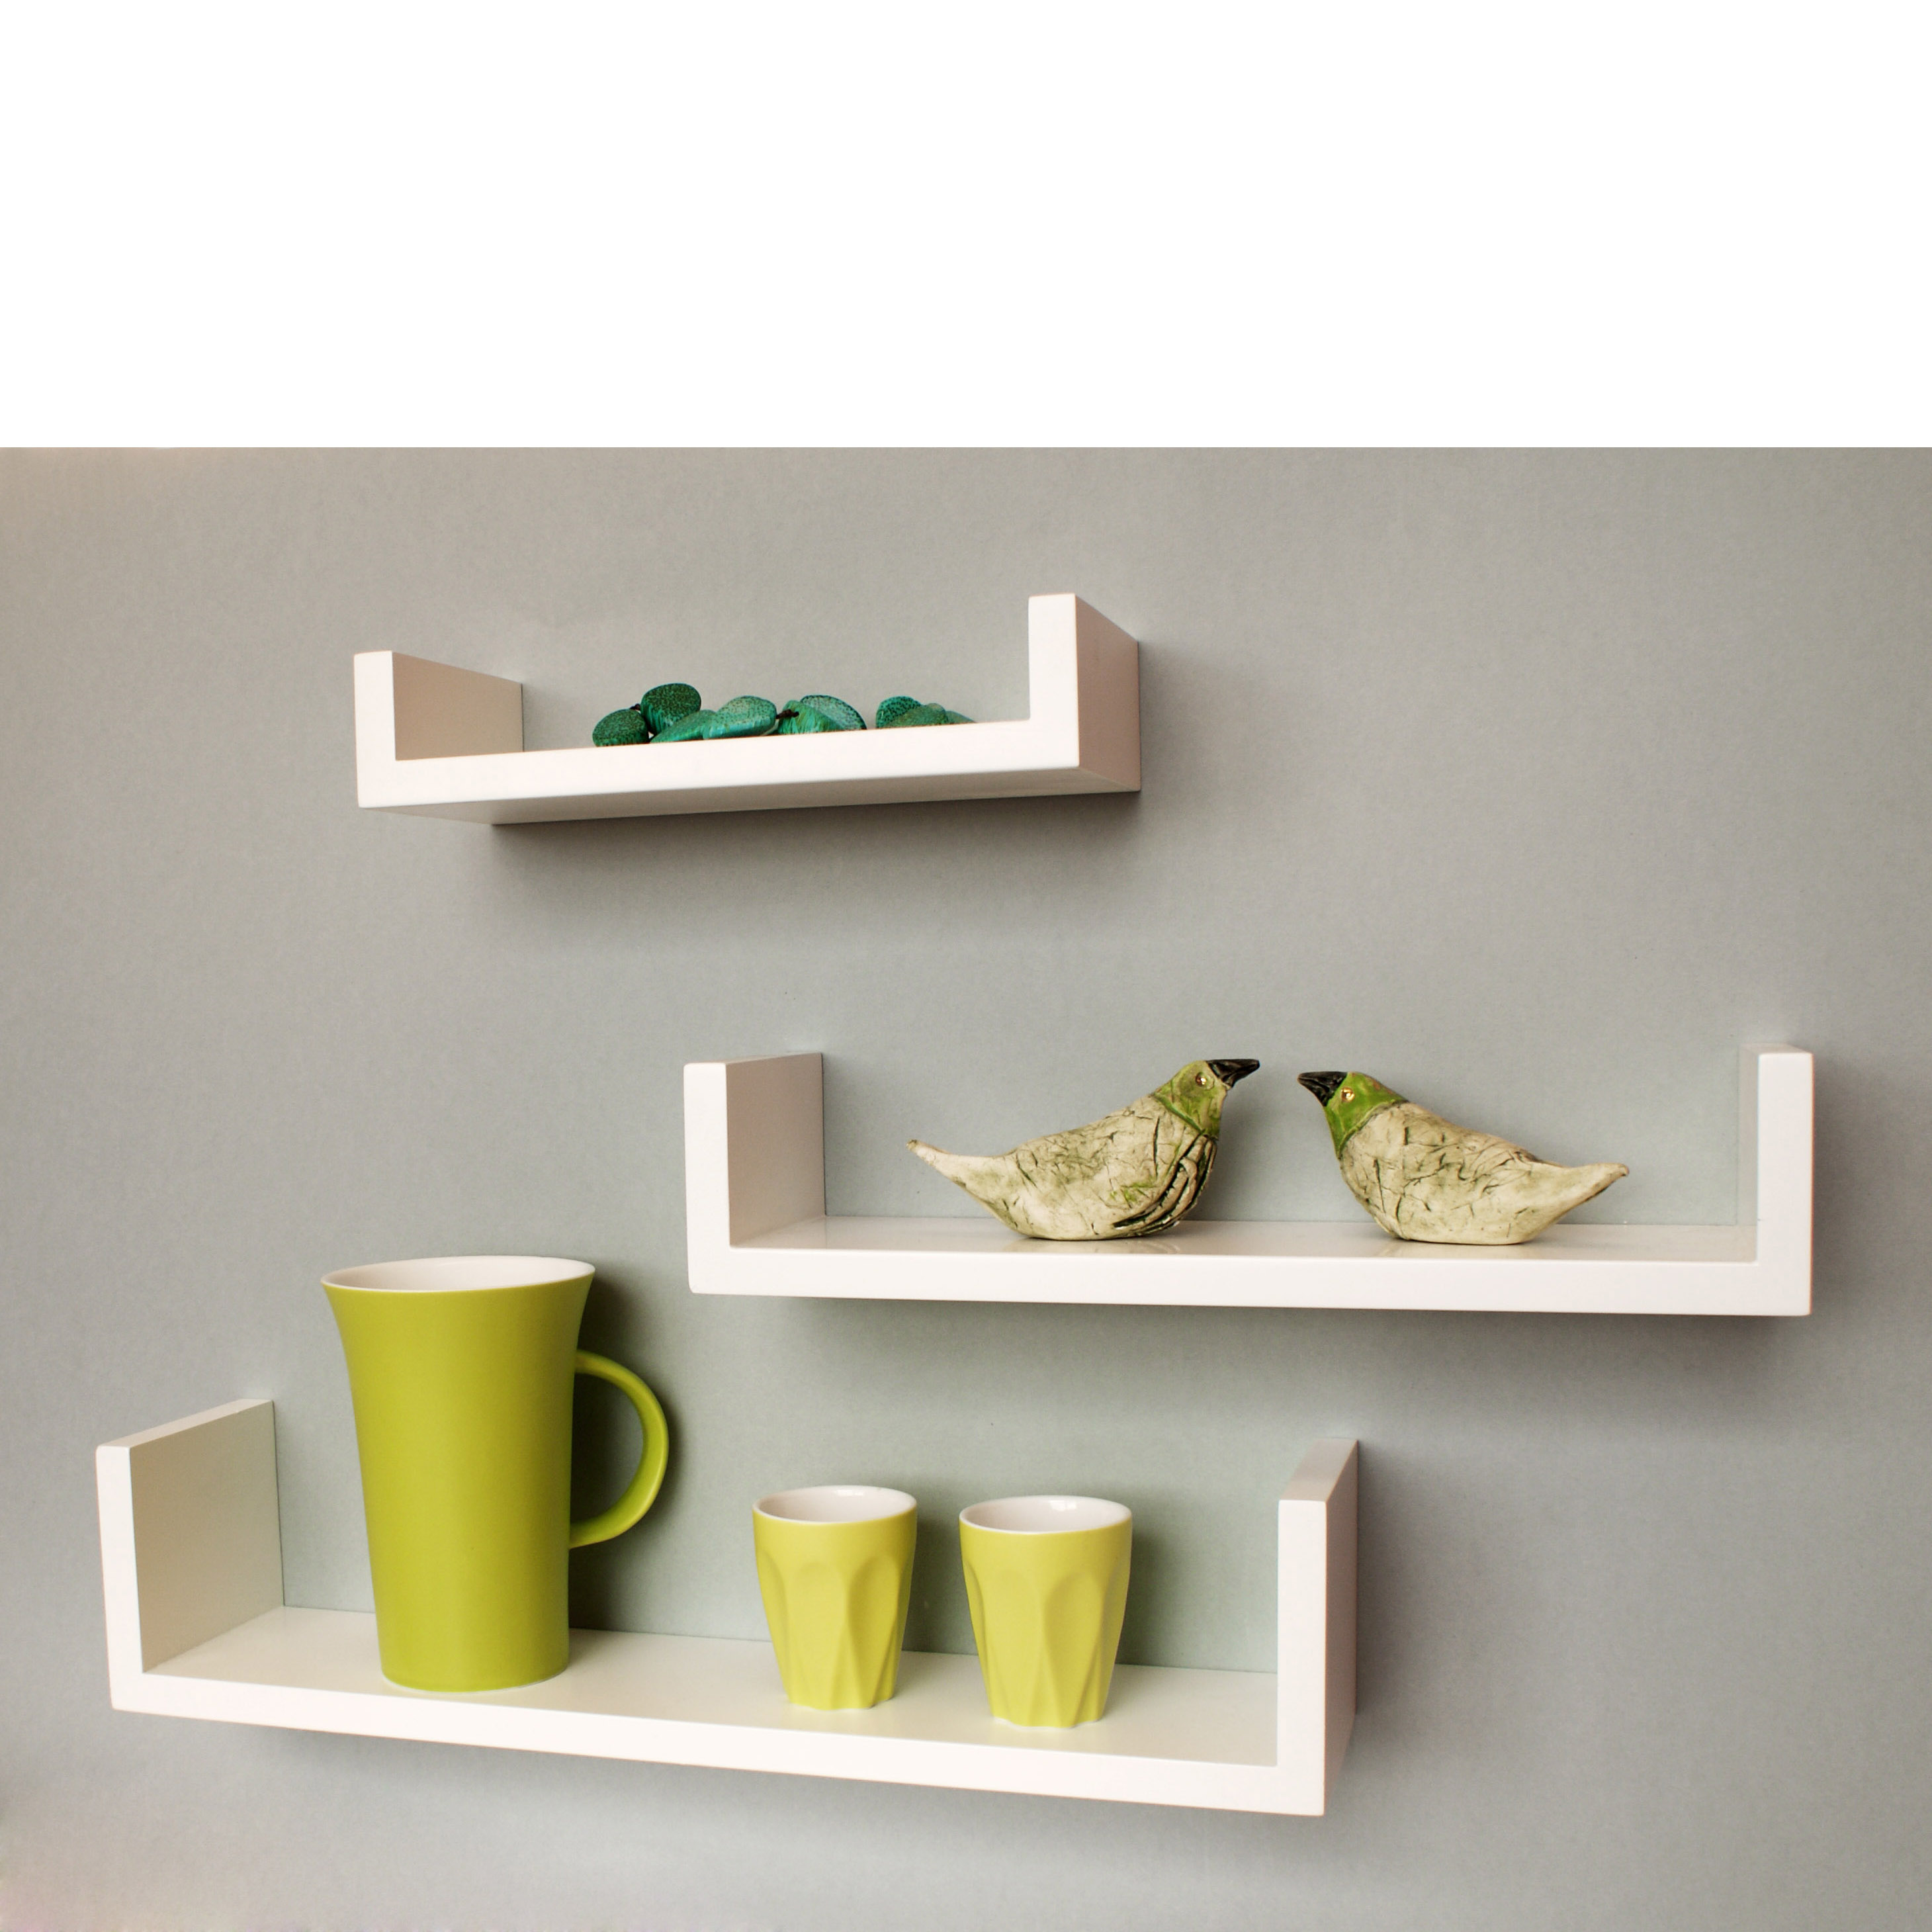 out of stock quality shelving kits: wall shelves uk x